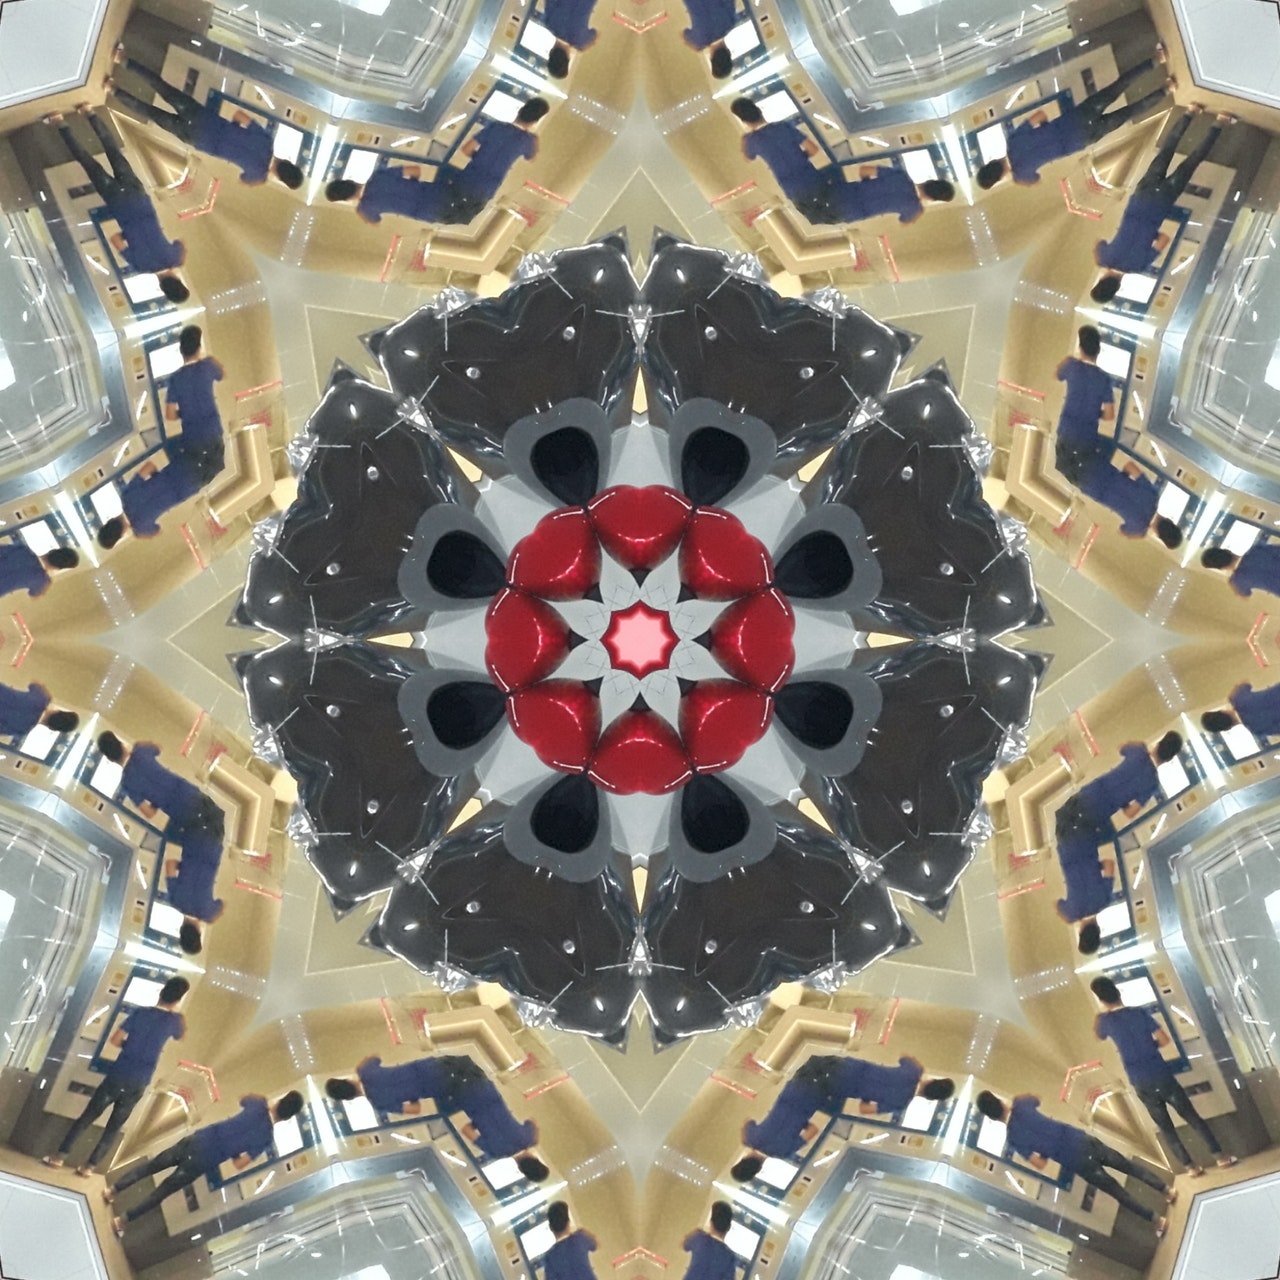 an image of a Kaleidoscope - analogy for brain-based design in education